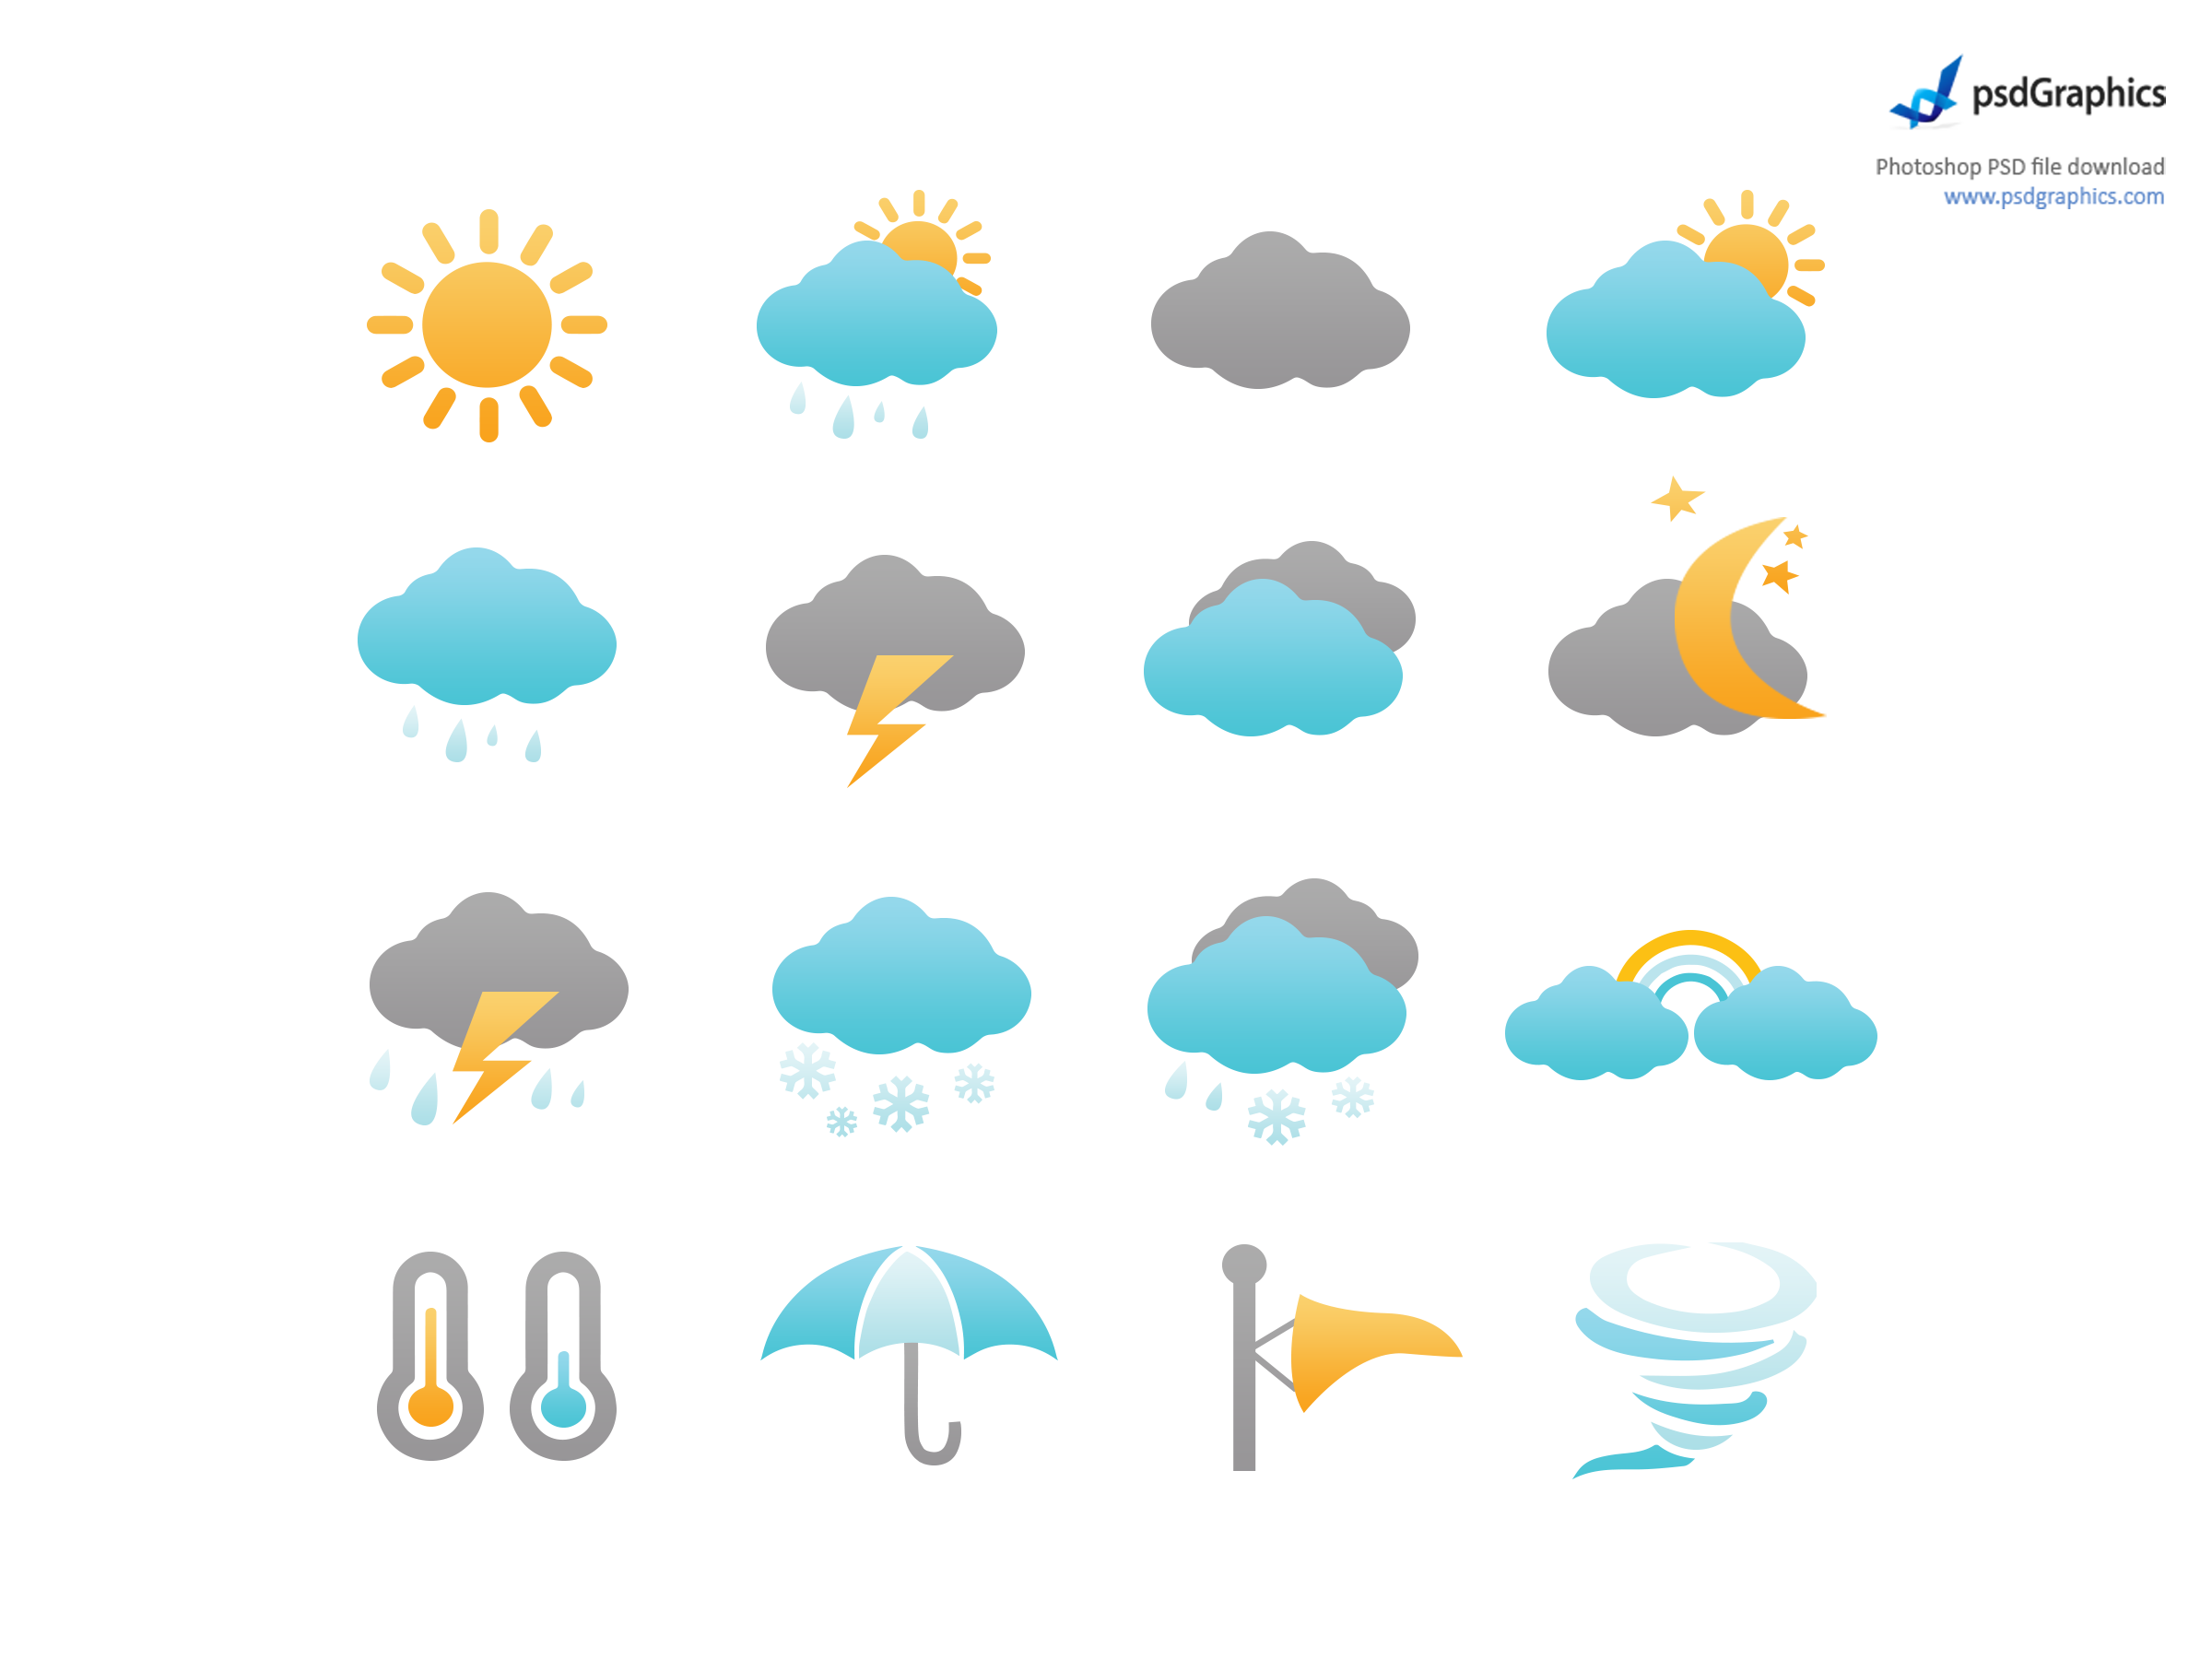 White background images all. Thermometer clip art weather